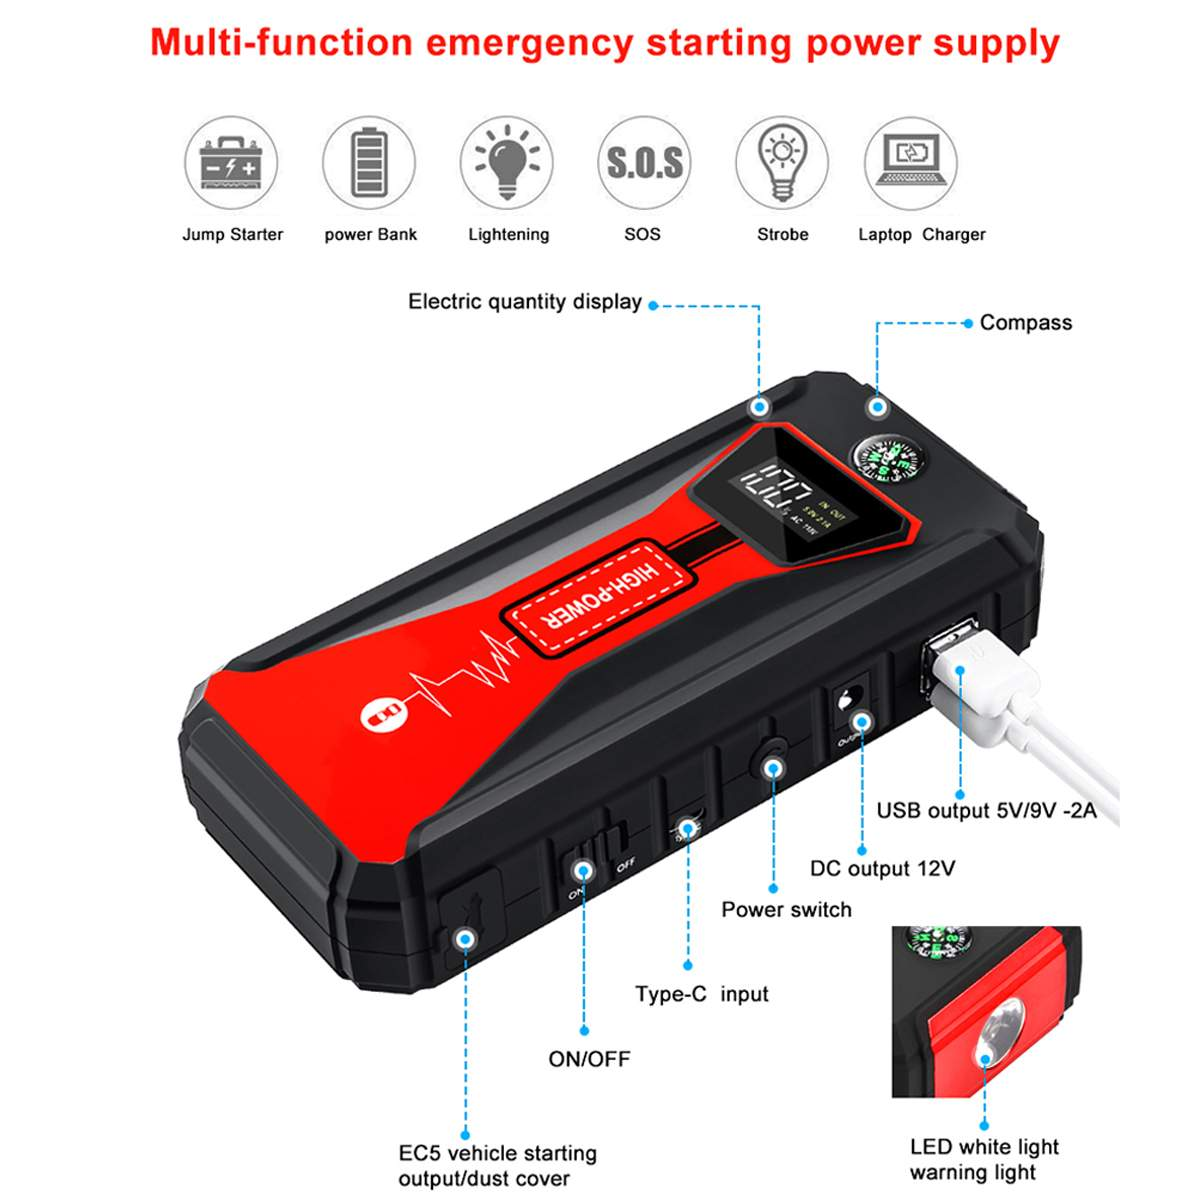 Emergency Car Battery Jump Start Power Bank Car Safety Gadgets New Car Gadgets